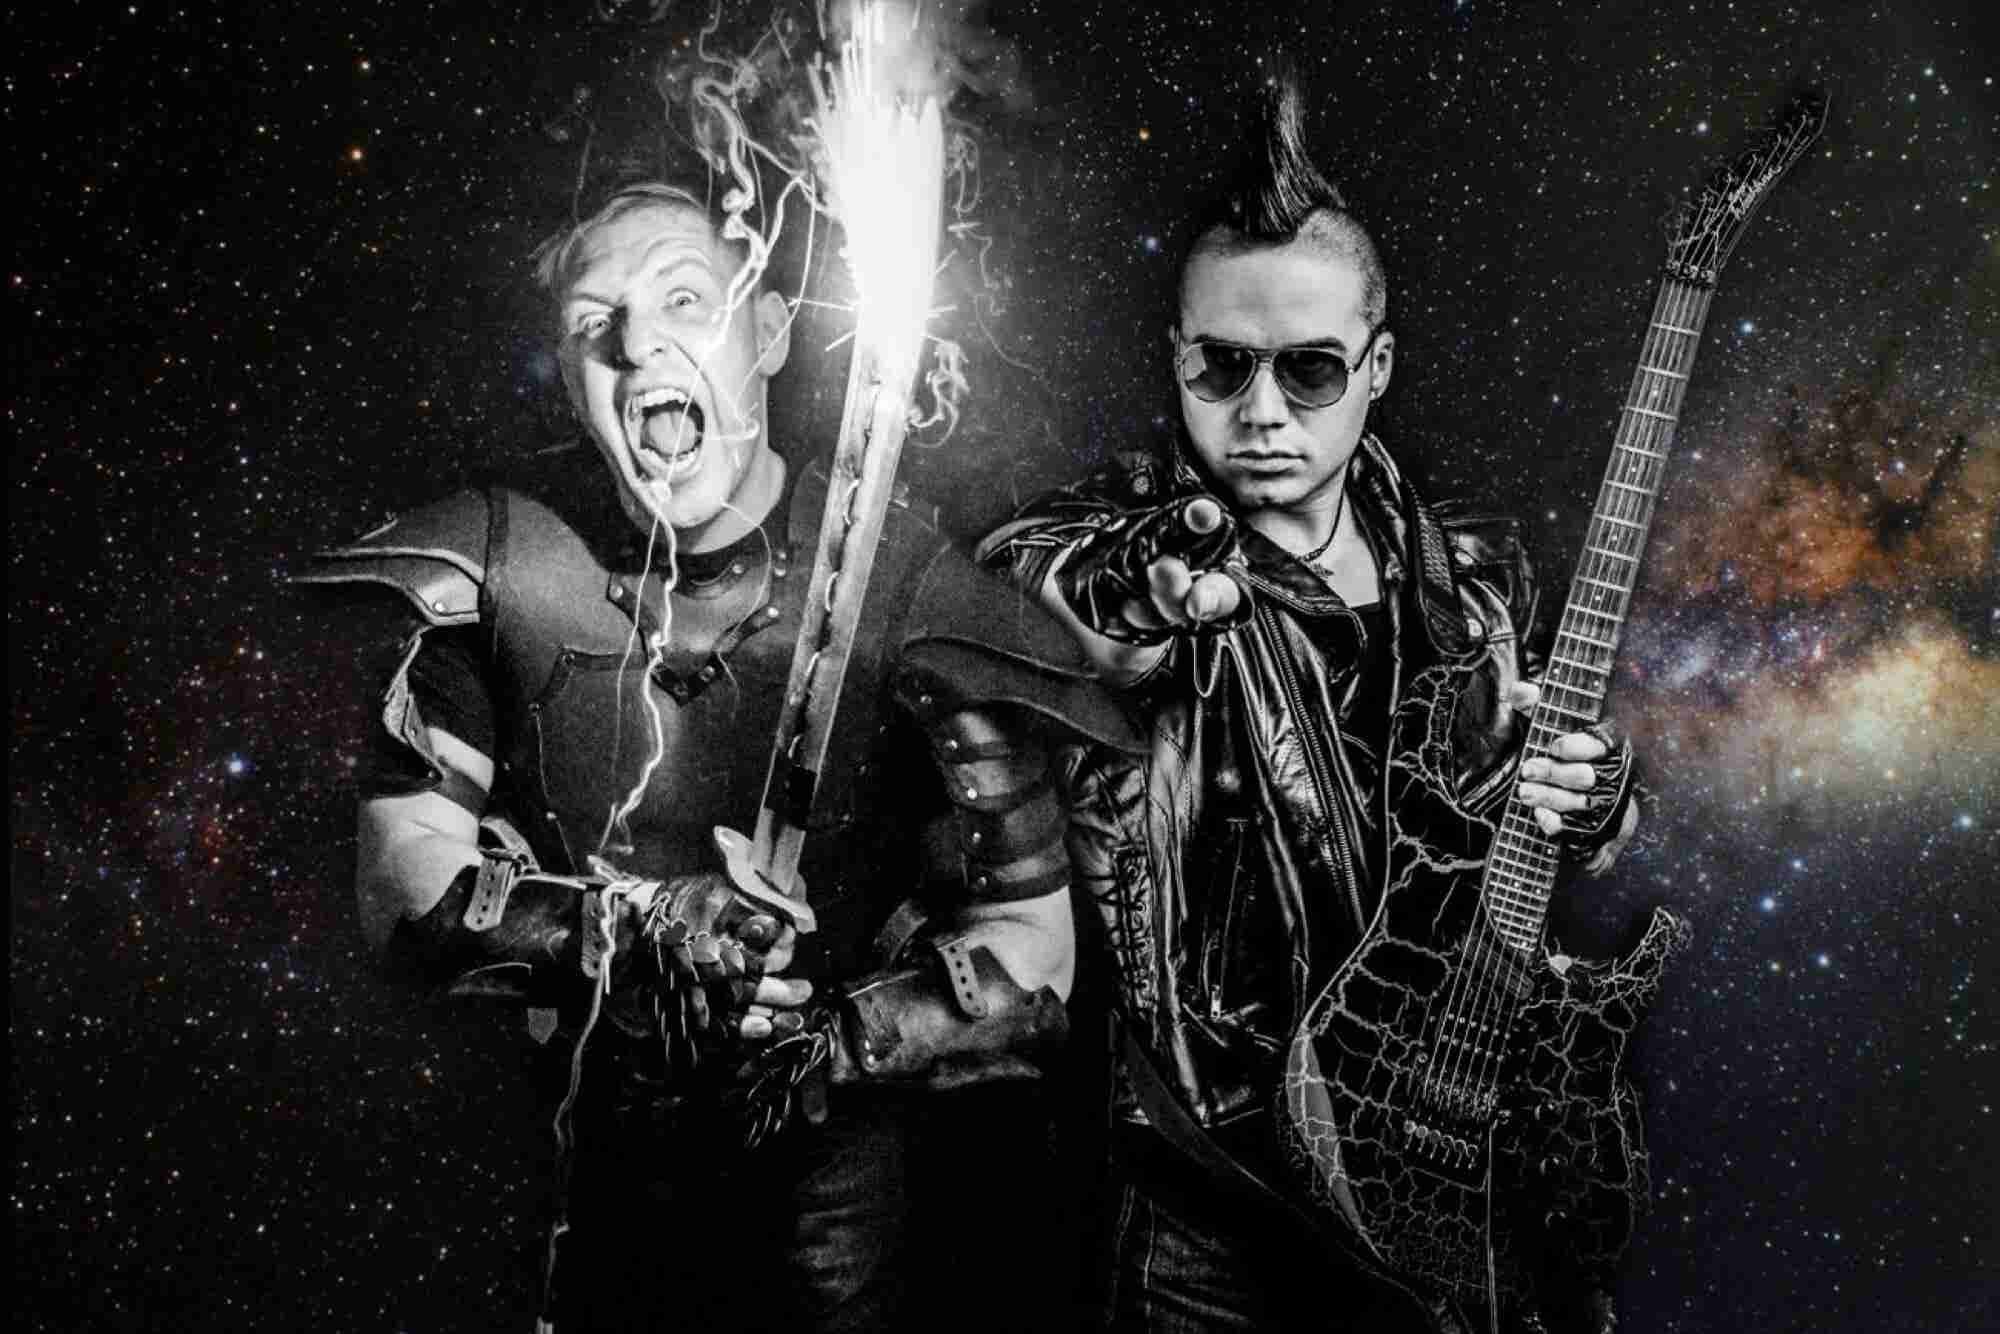 The Heavy Metal Tribute to Elon Musk You've Been Waiting For